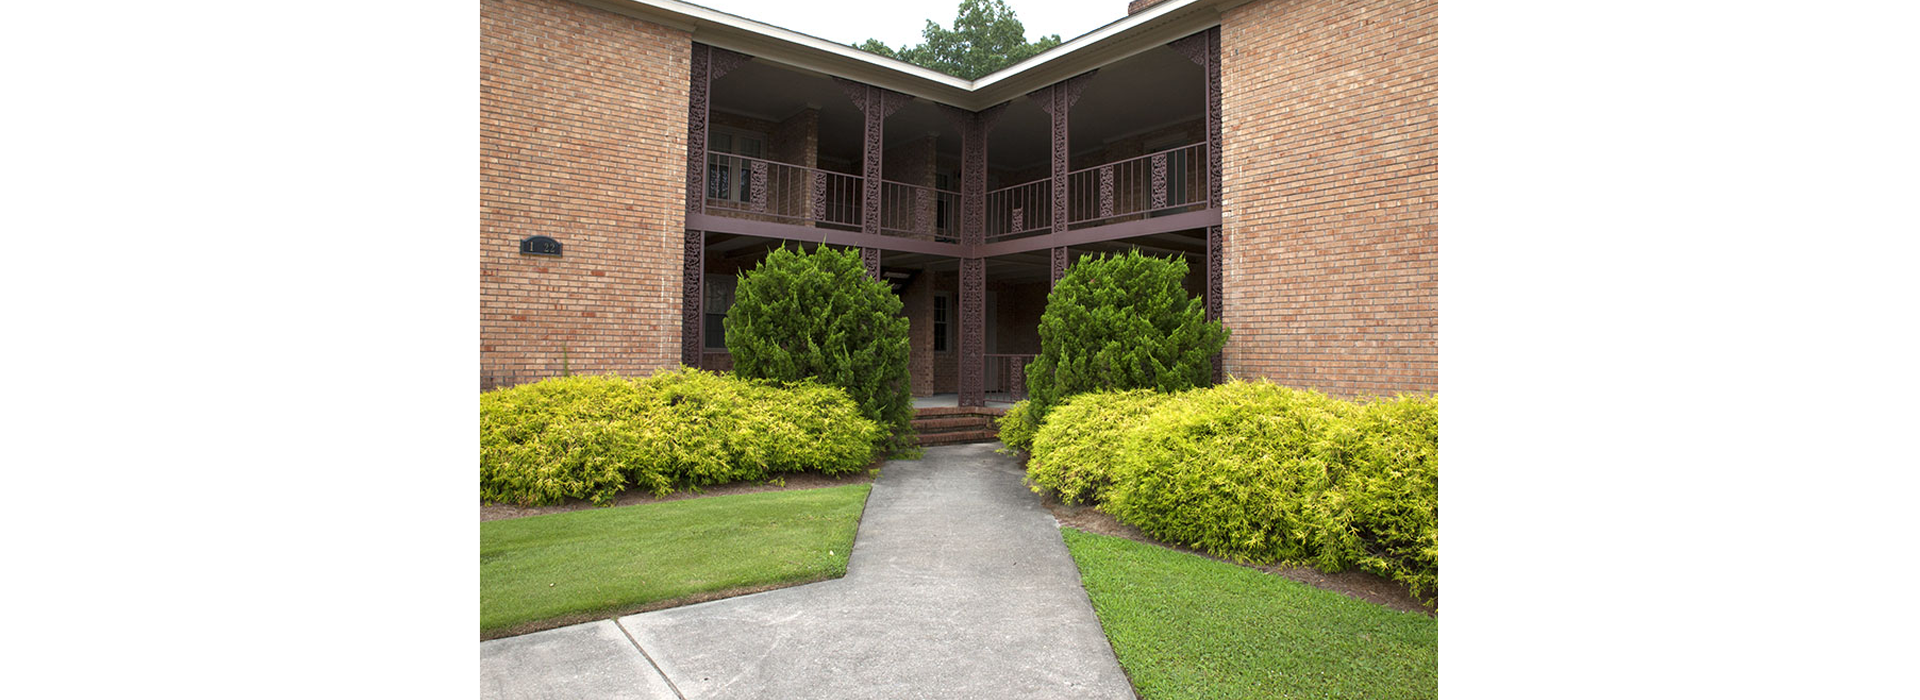 one bedroom apartments in greenville nc design - Affordable One Bedroom Apartments